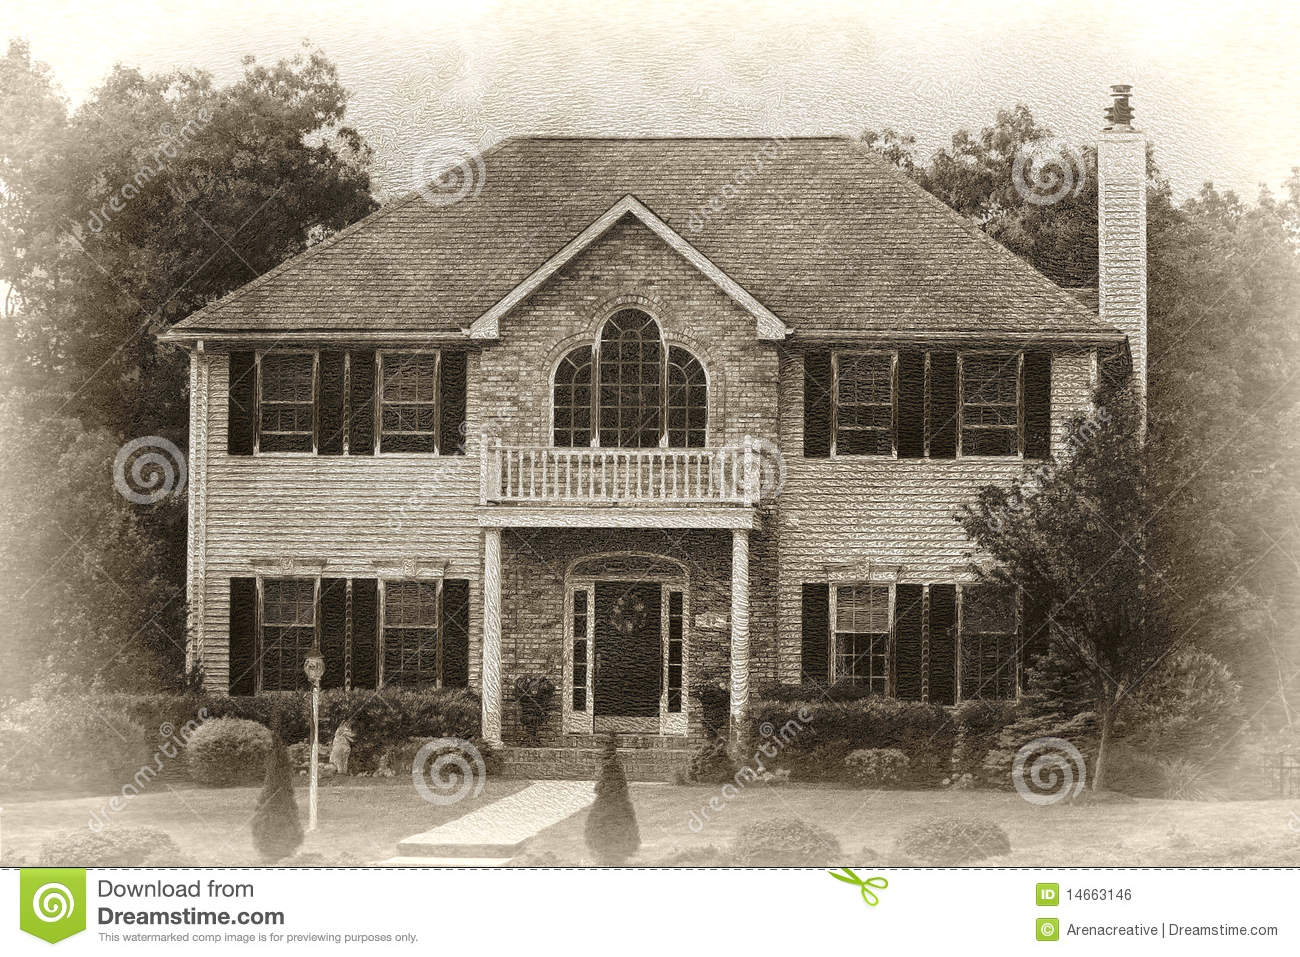 Modern House Sketch Stock Illustration - Image: 40675882 - ^